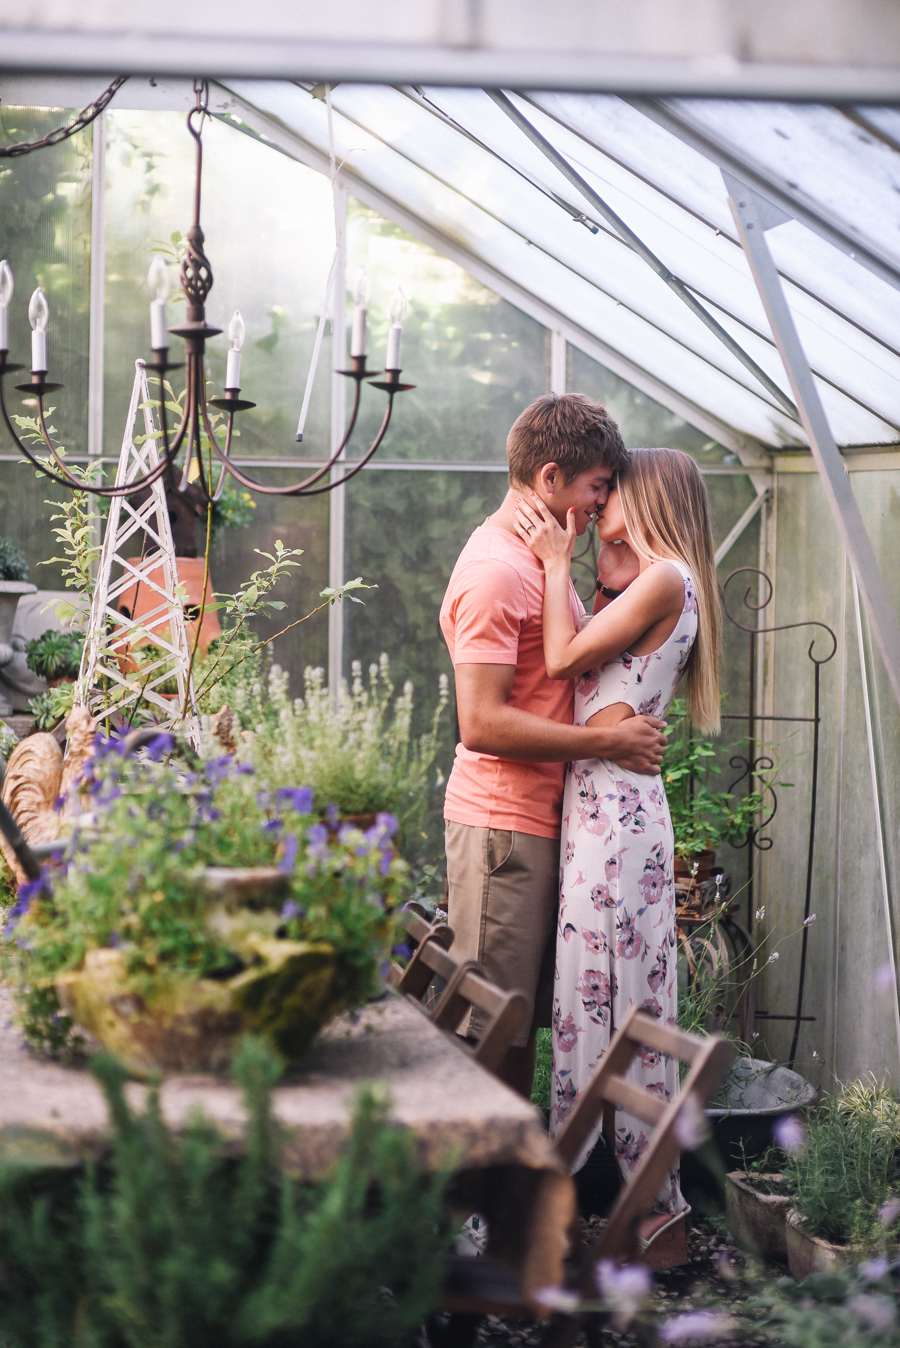 Southern_Exposure_Herb_Farm_Engagement_Photos-5.jpg